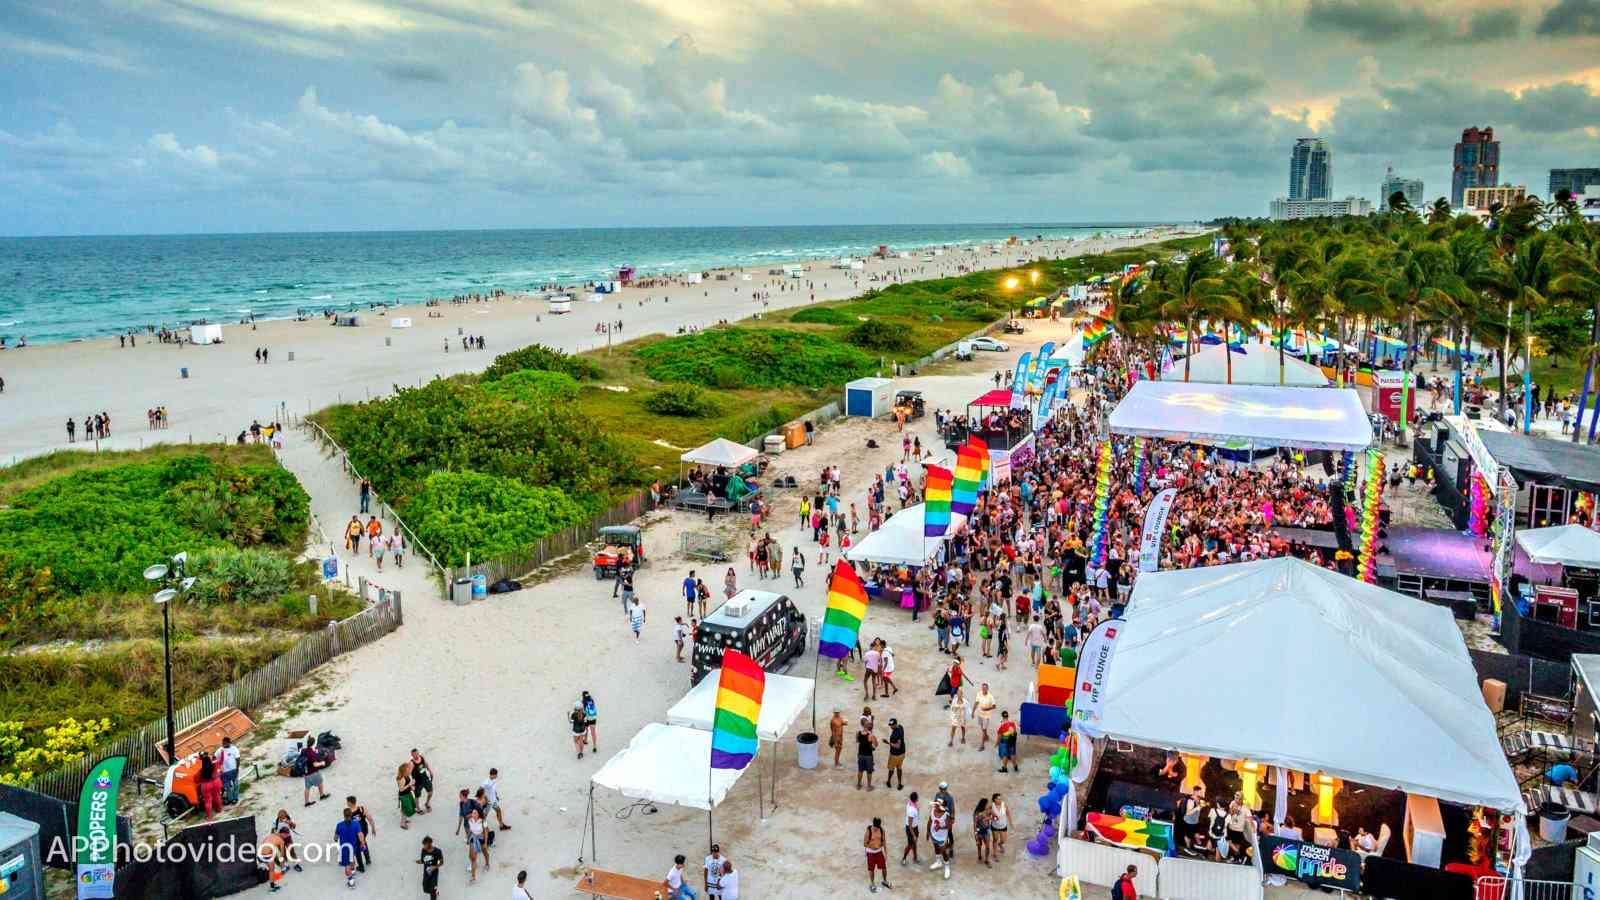 The Miami Beach Pride Festival is an epic week-long event not to be missed!